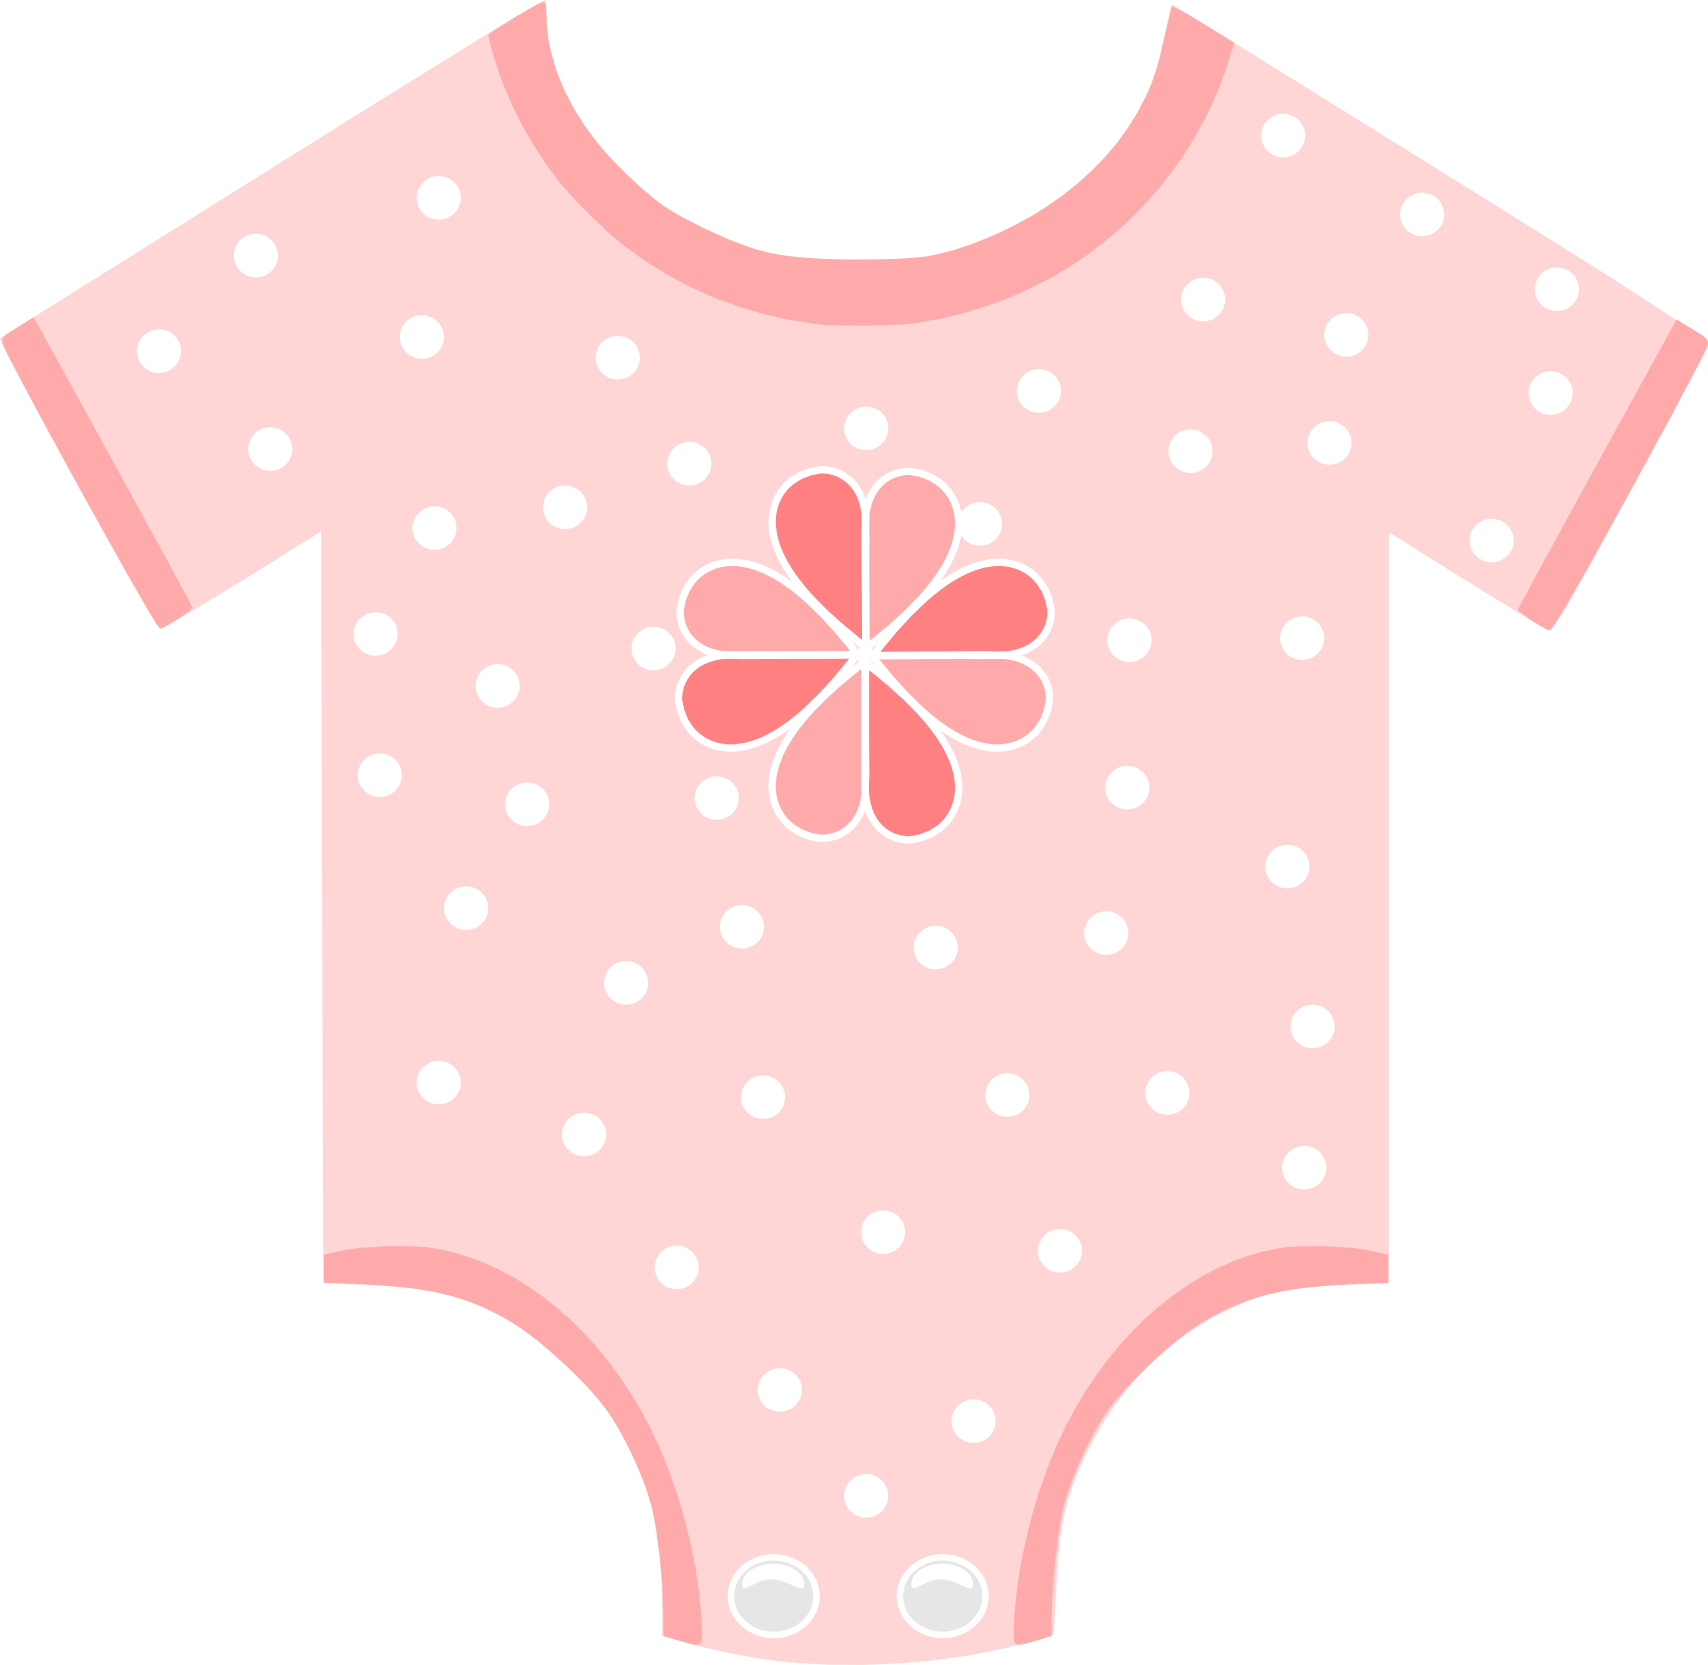 baby girl clipart transparent background